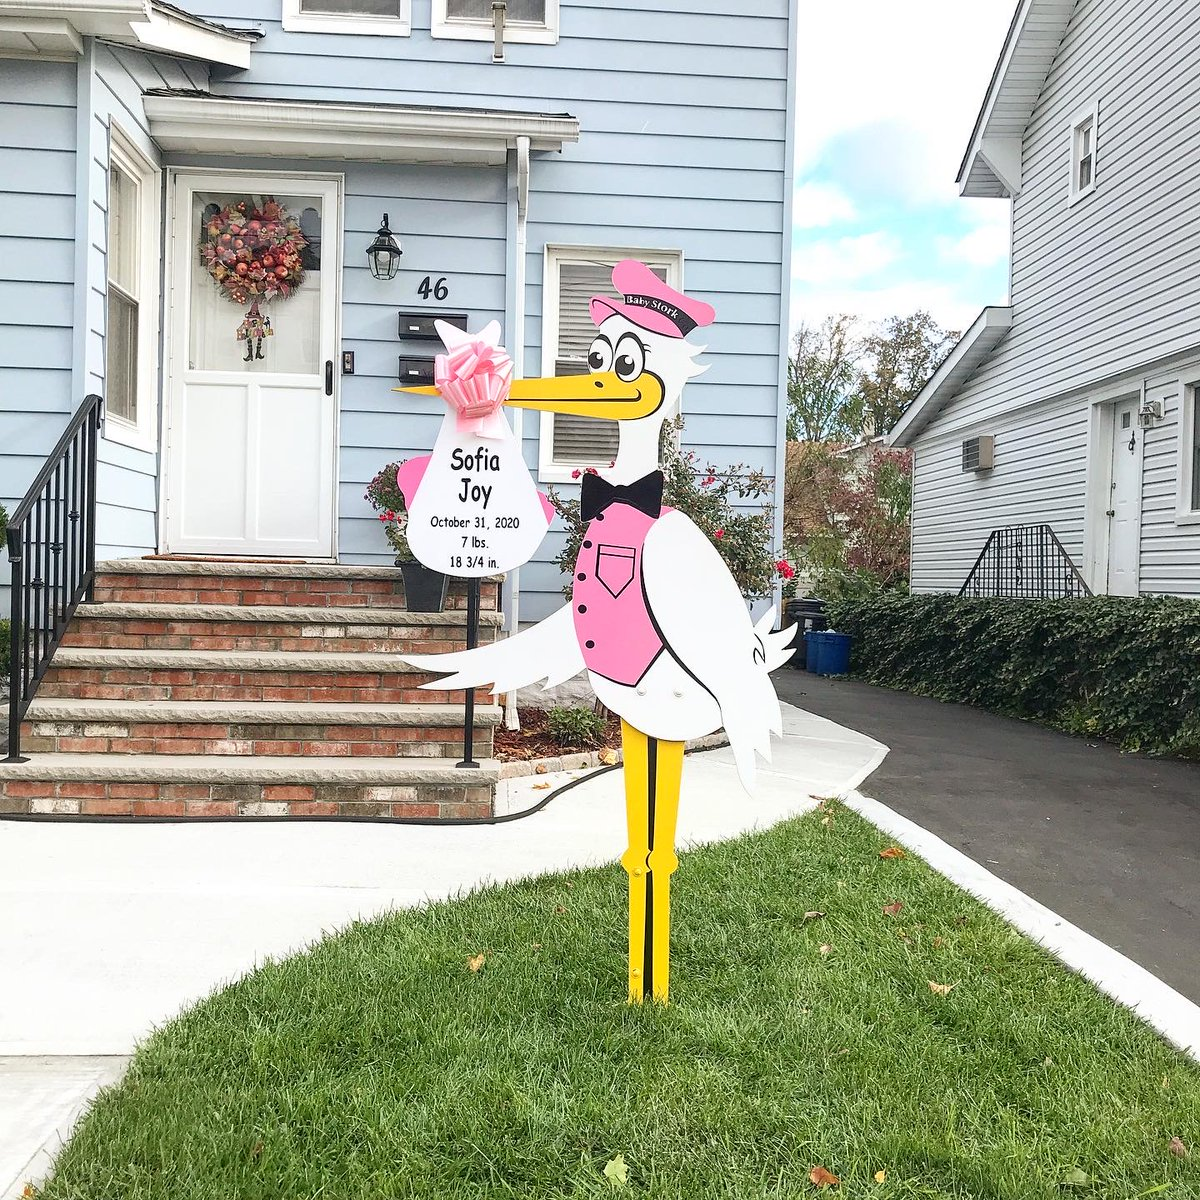 yard signs have something special for the whole family. We proudly serve North and Central NJ, and selected areas of PA & NY. #pregnant #baby #pregnancy #love #maternity #nj #gift #giftidea #aww #momtobe #babystork #babystorkshop #thirdtrimester #cute